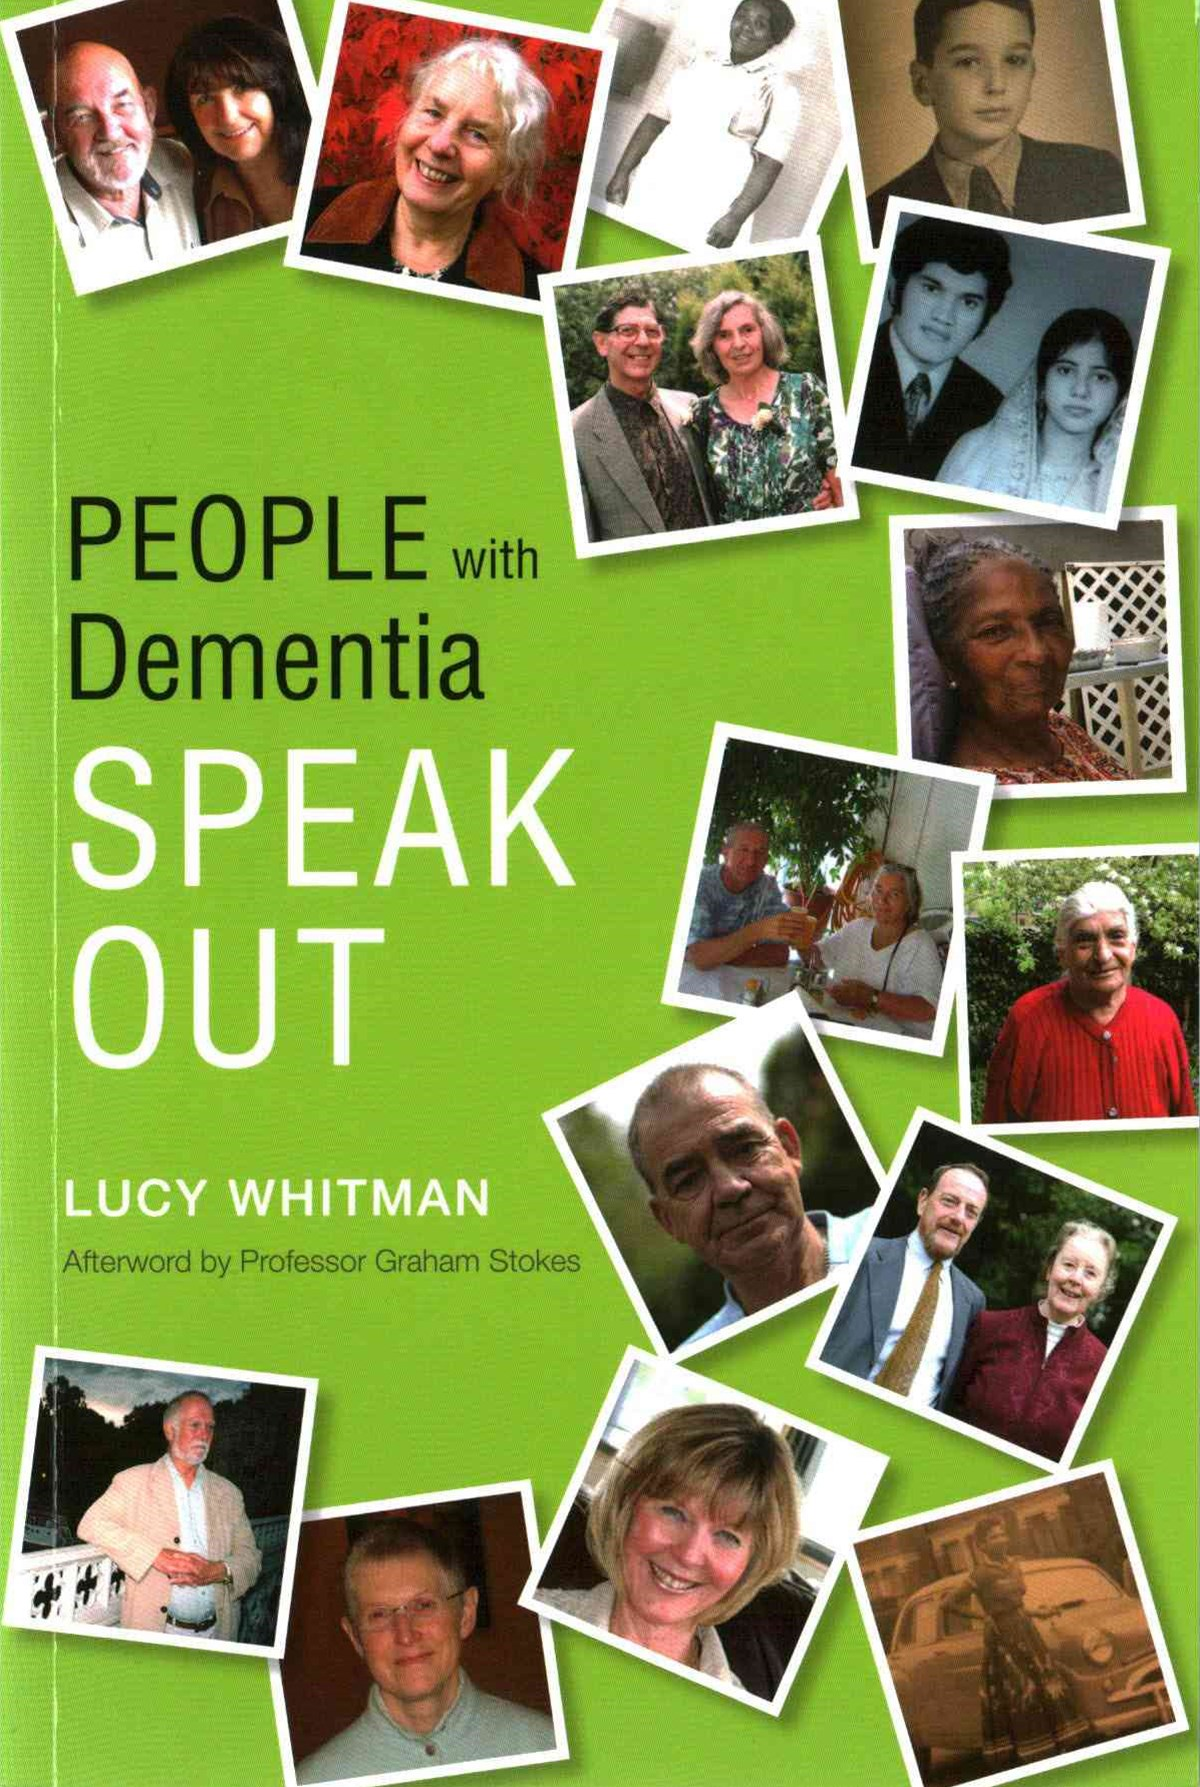 People with Dementia Speak Out